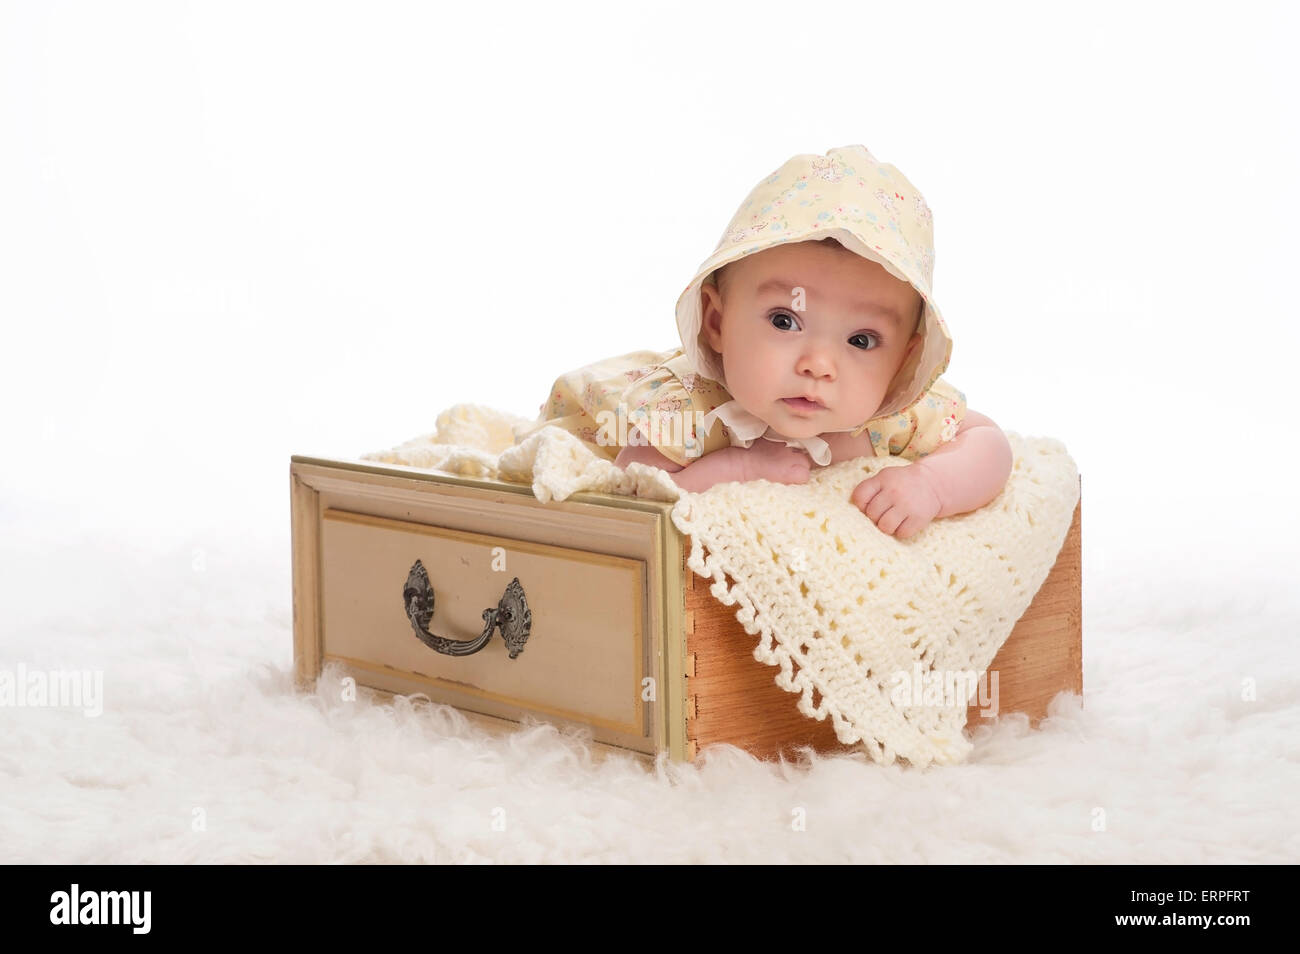 A 3 month old baby girl wearing a yellow bonnet and lying in a vintage  yellow drawer. f7f67039098